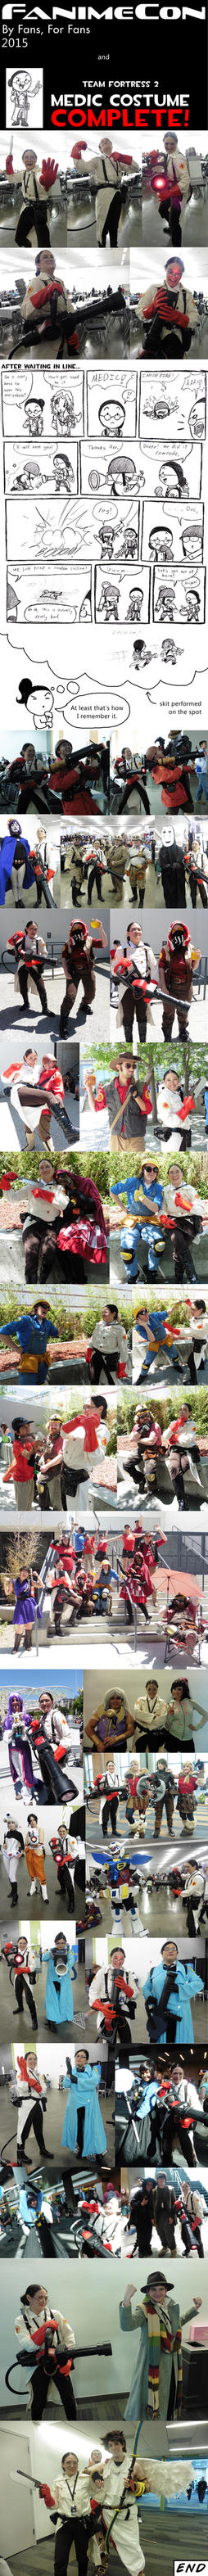 Fanime 2015 montage and Medic costume complete! by Xaolin26